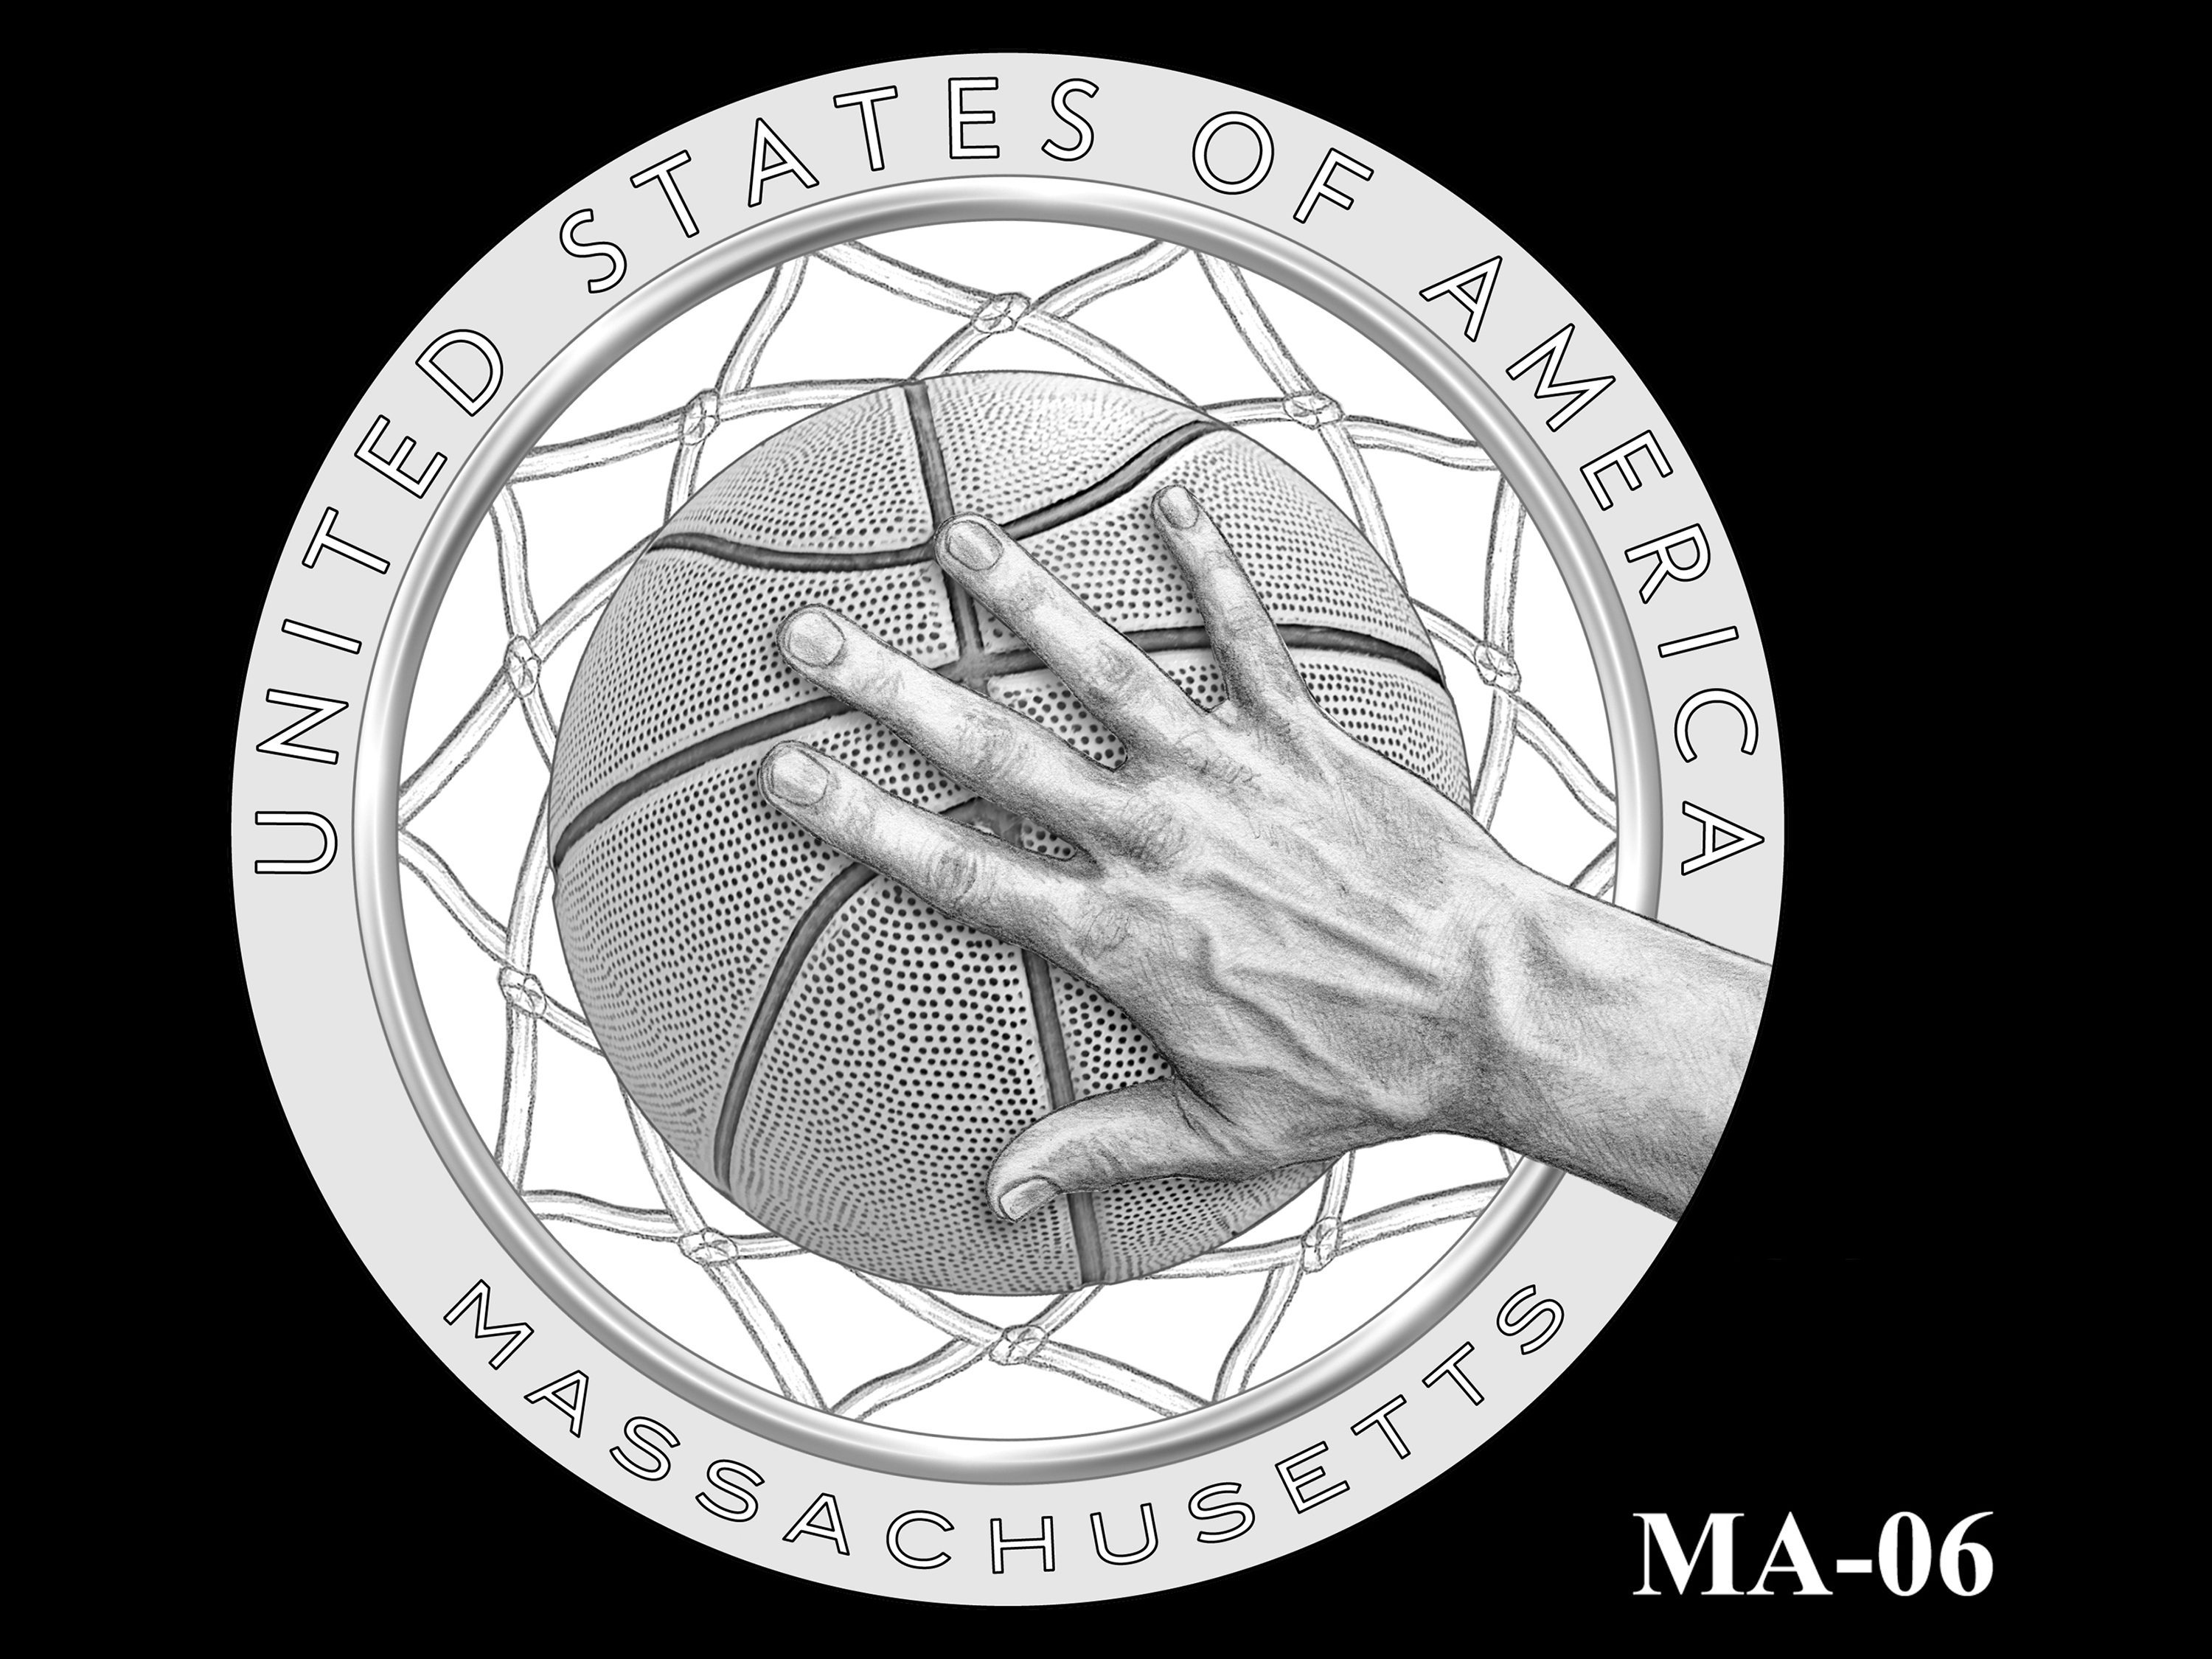 MA-06 -- 2020 American Innovation $1 Coin - Massachusetts